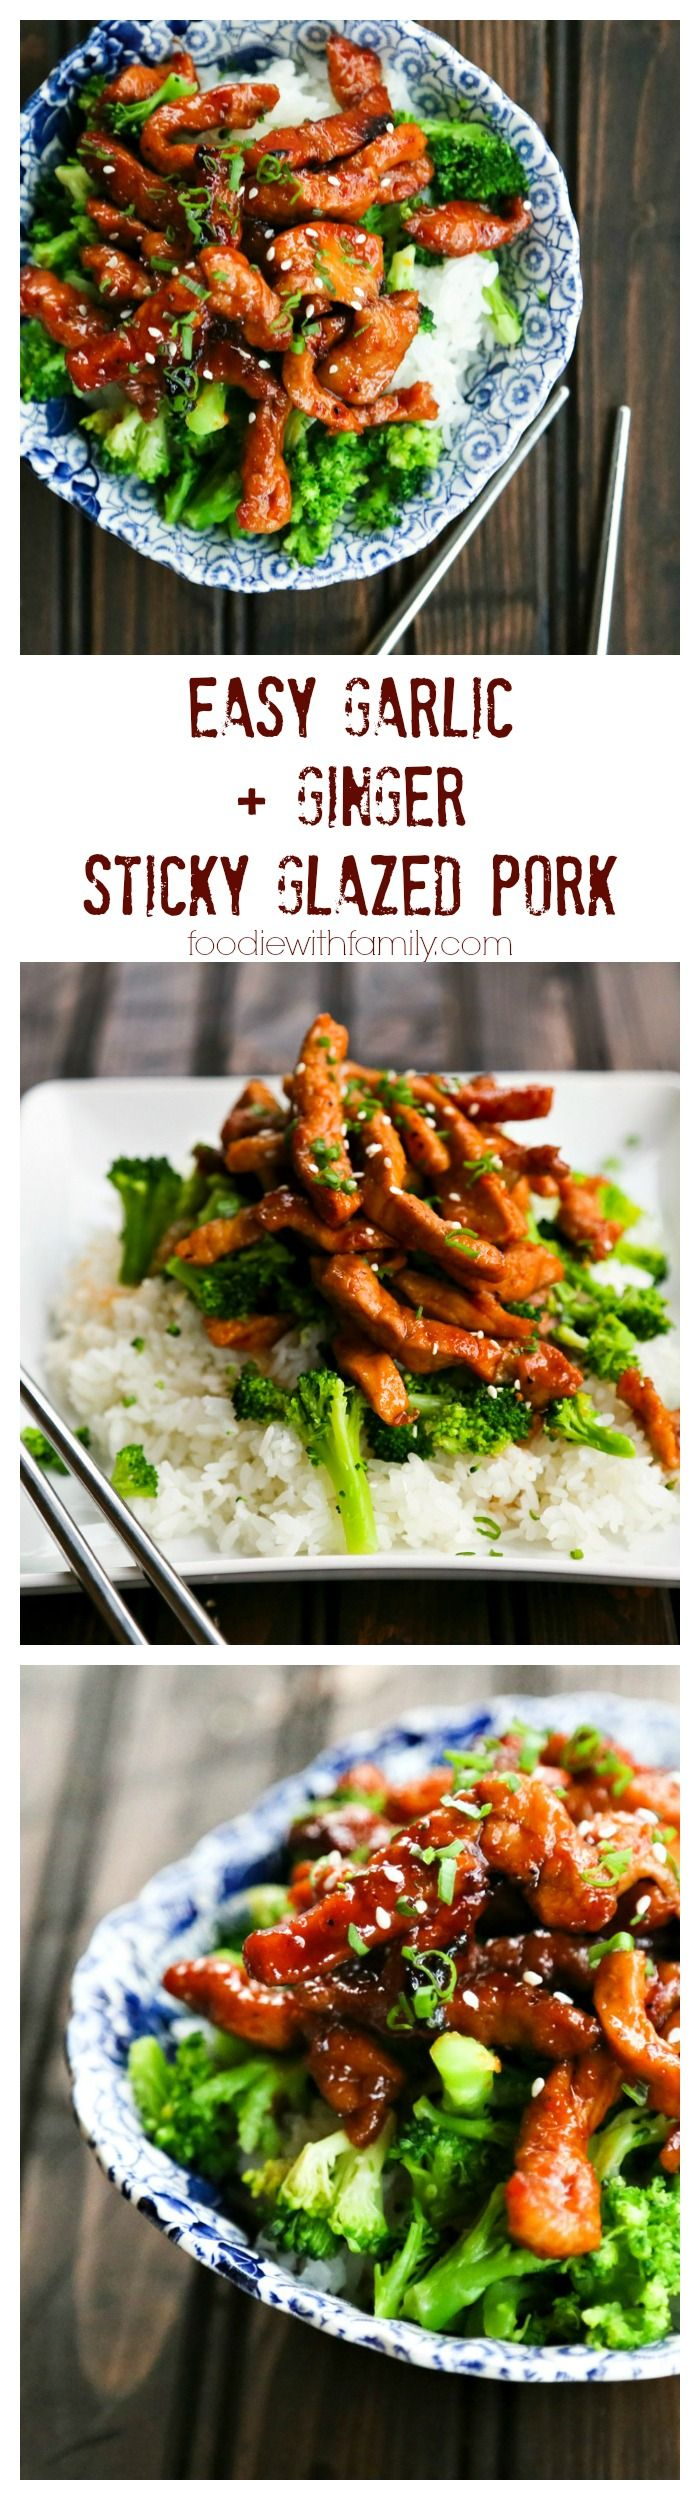 Easy Garlic and Ginger Sticky Glazed Pork Stir Fry